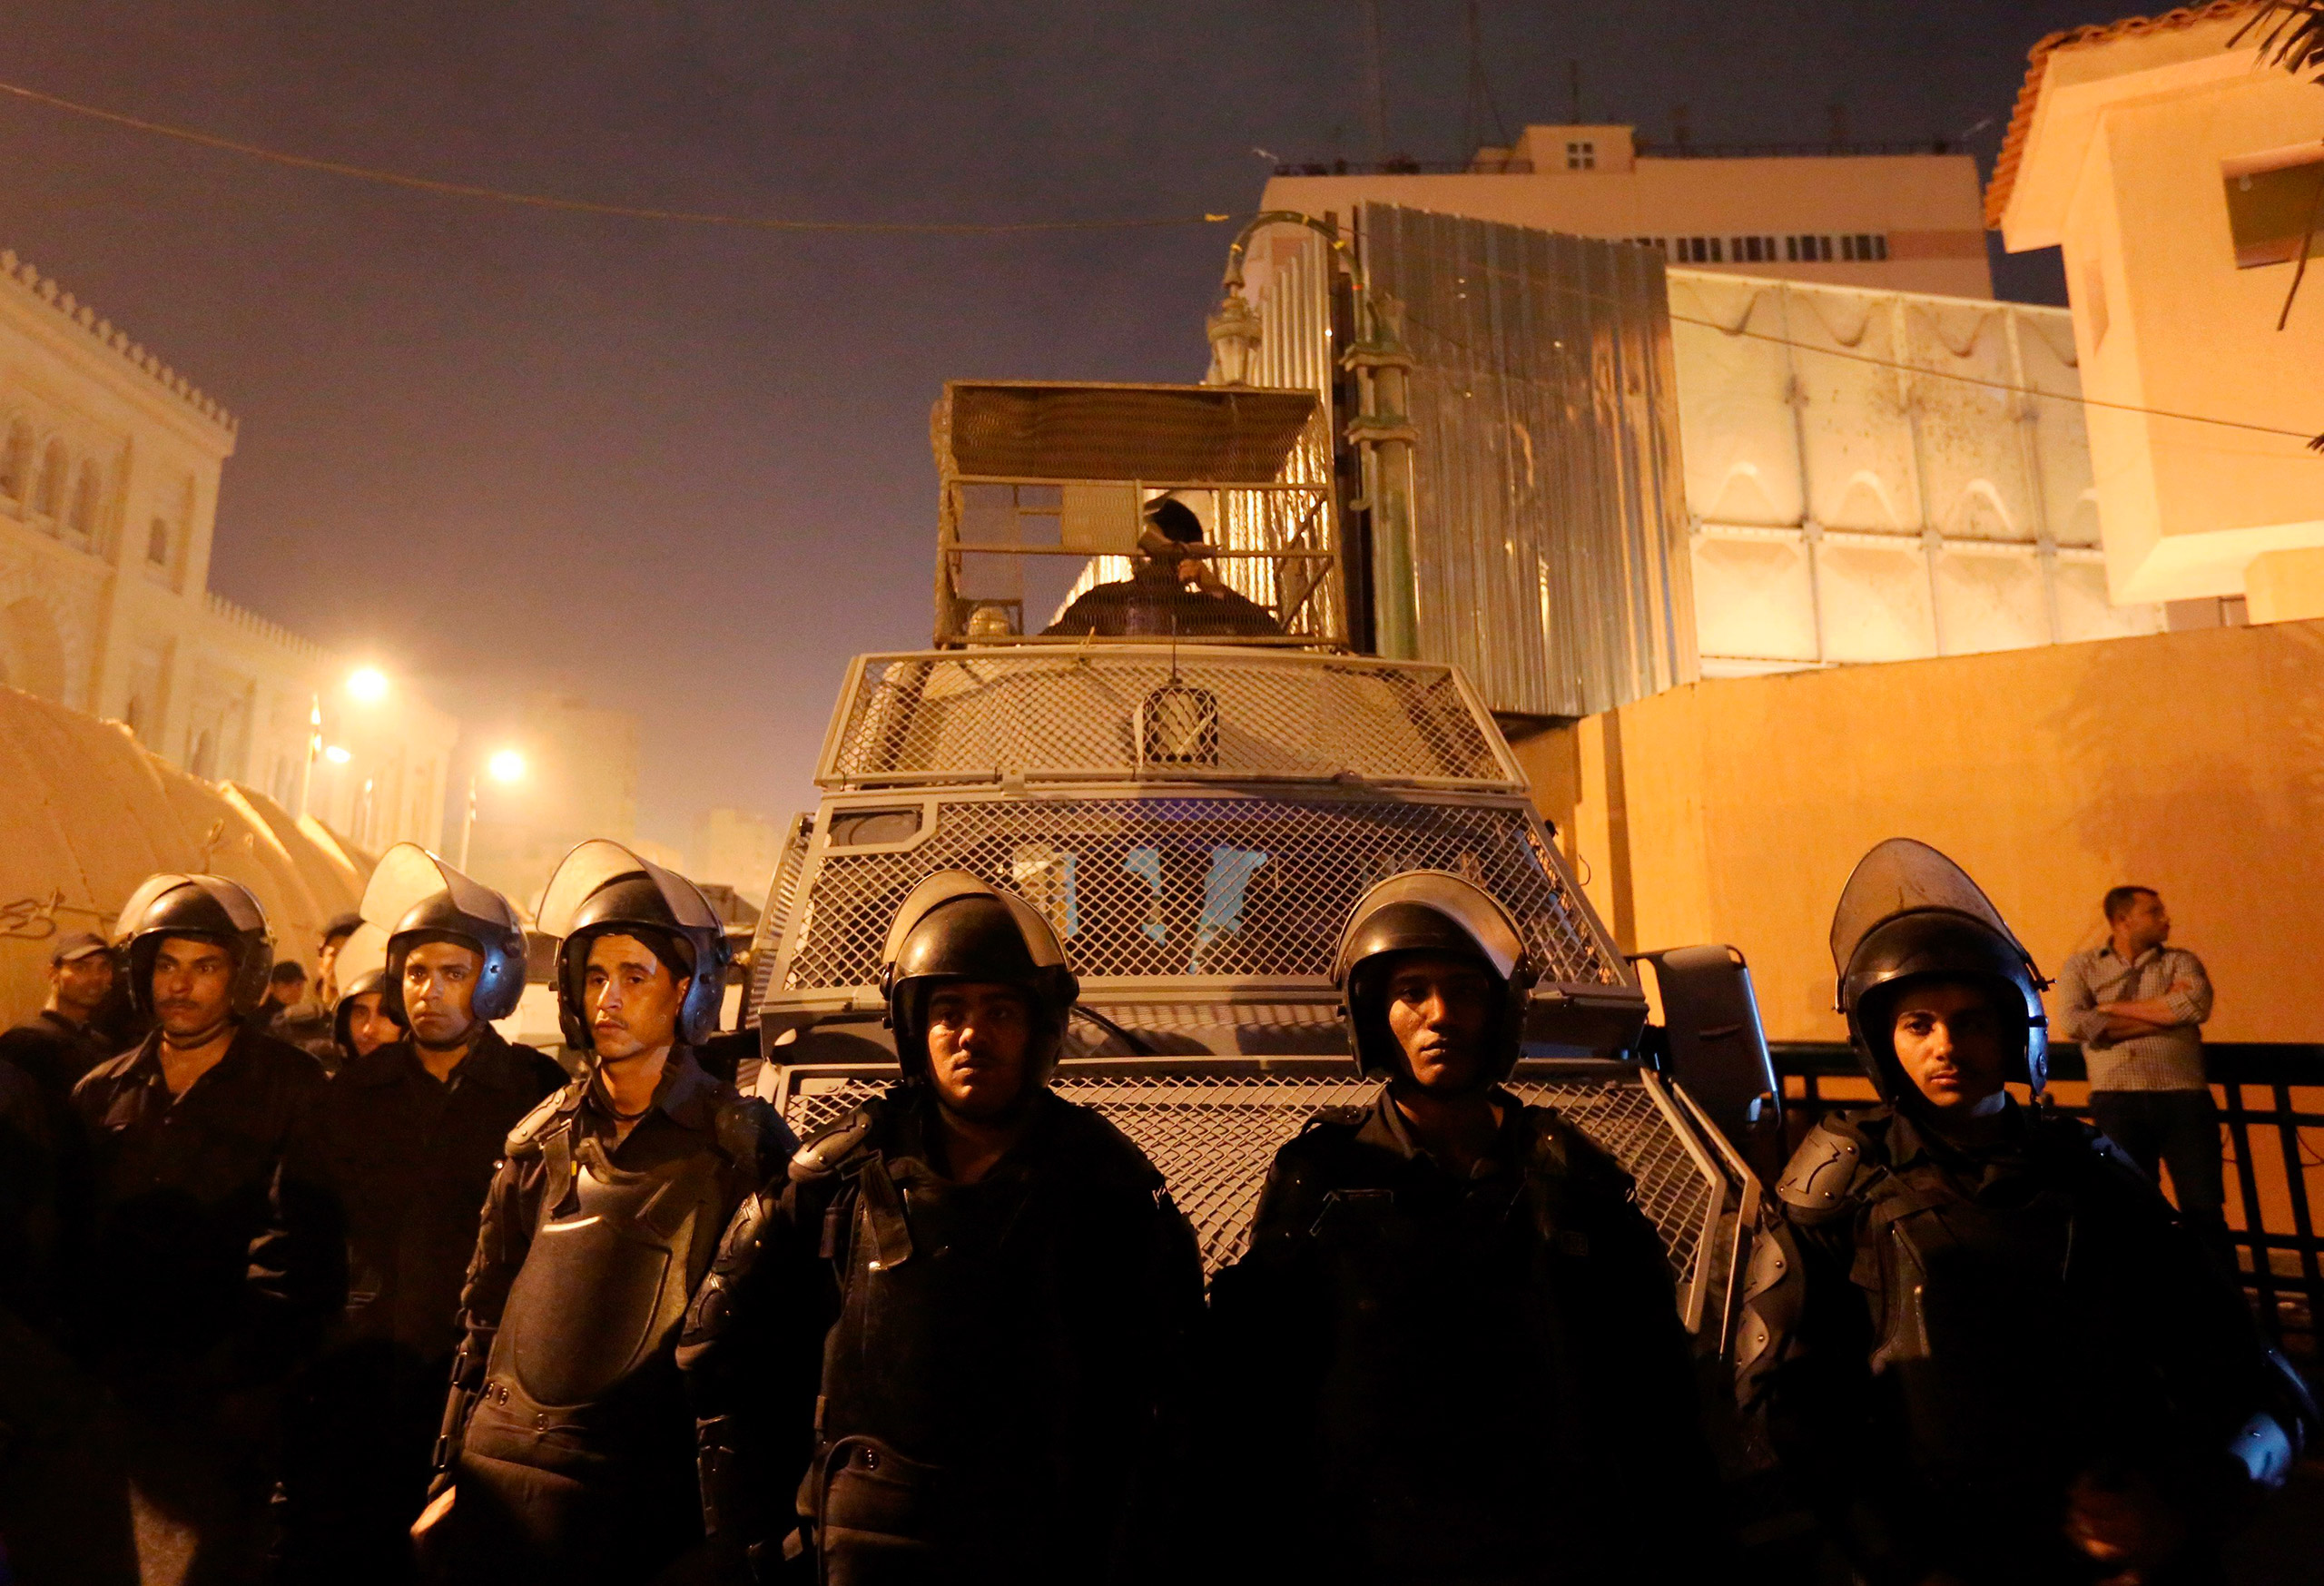 Riot police stand guard as protesters gather in front of the Cairo security directorate after a policeman fatally shot a man in the street, Cairo, Egypt, Feb. 18, 2016.